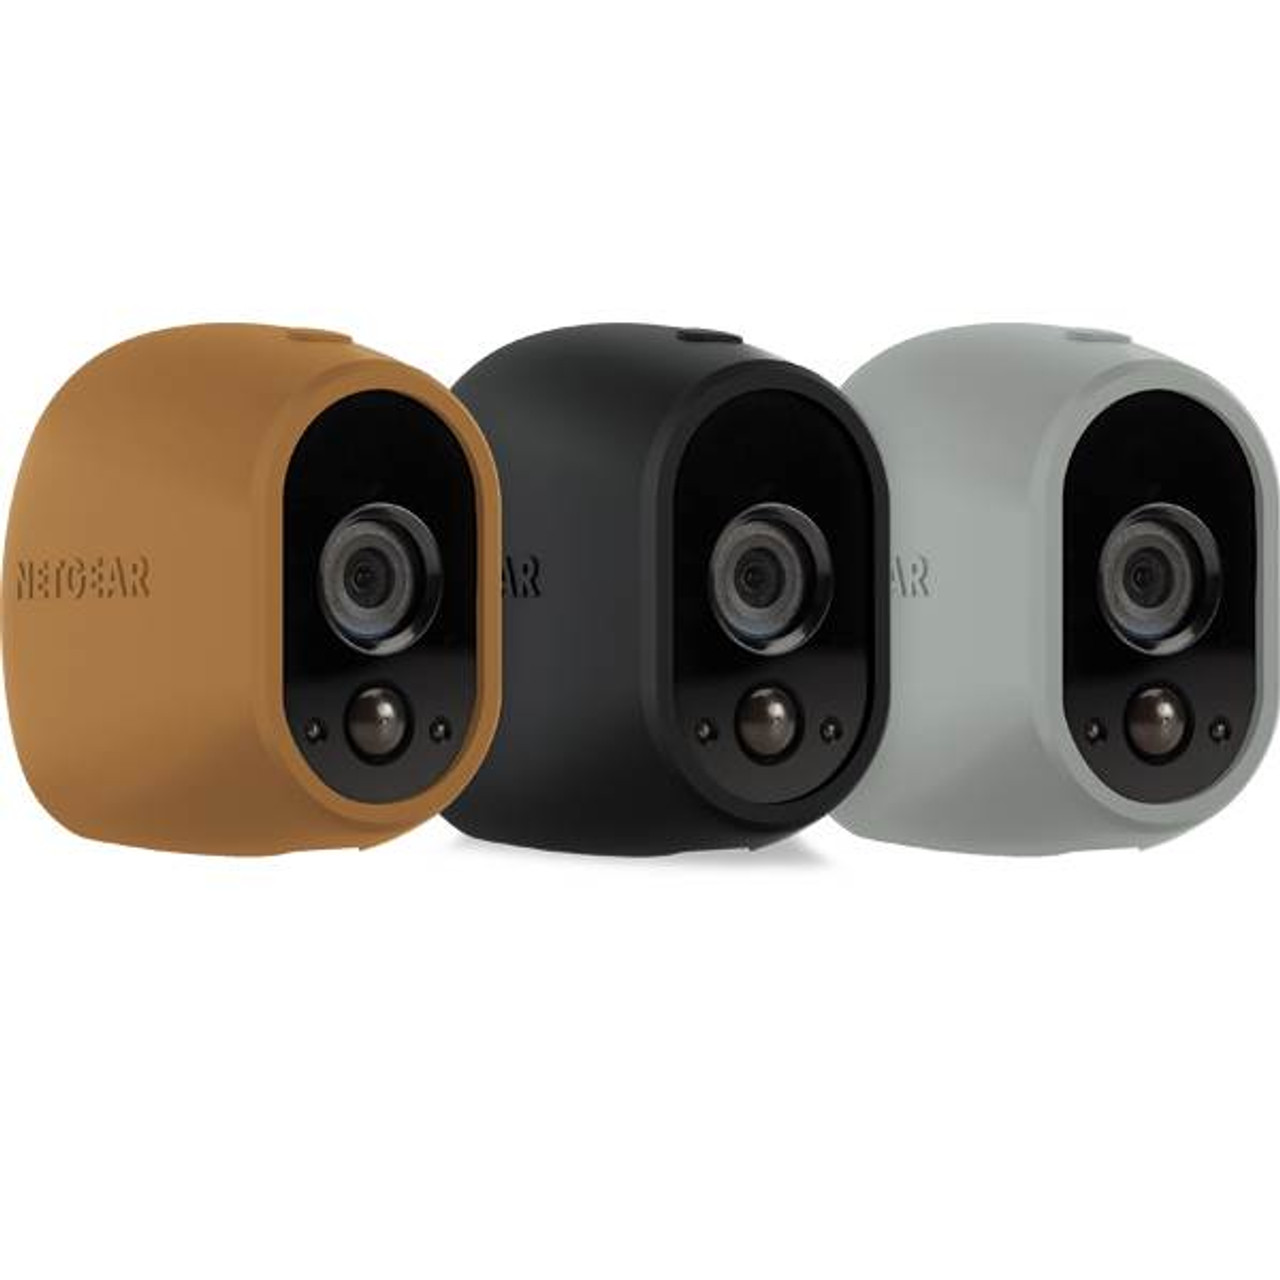 Image for Arlo Replaceable Multi-colored Silicone Skins - Brown/Black/Grey CX Computer Superstore